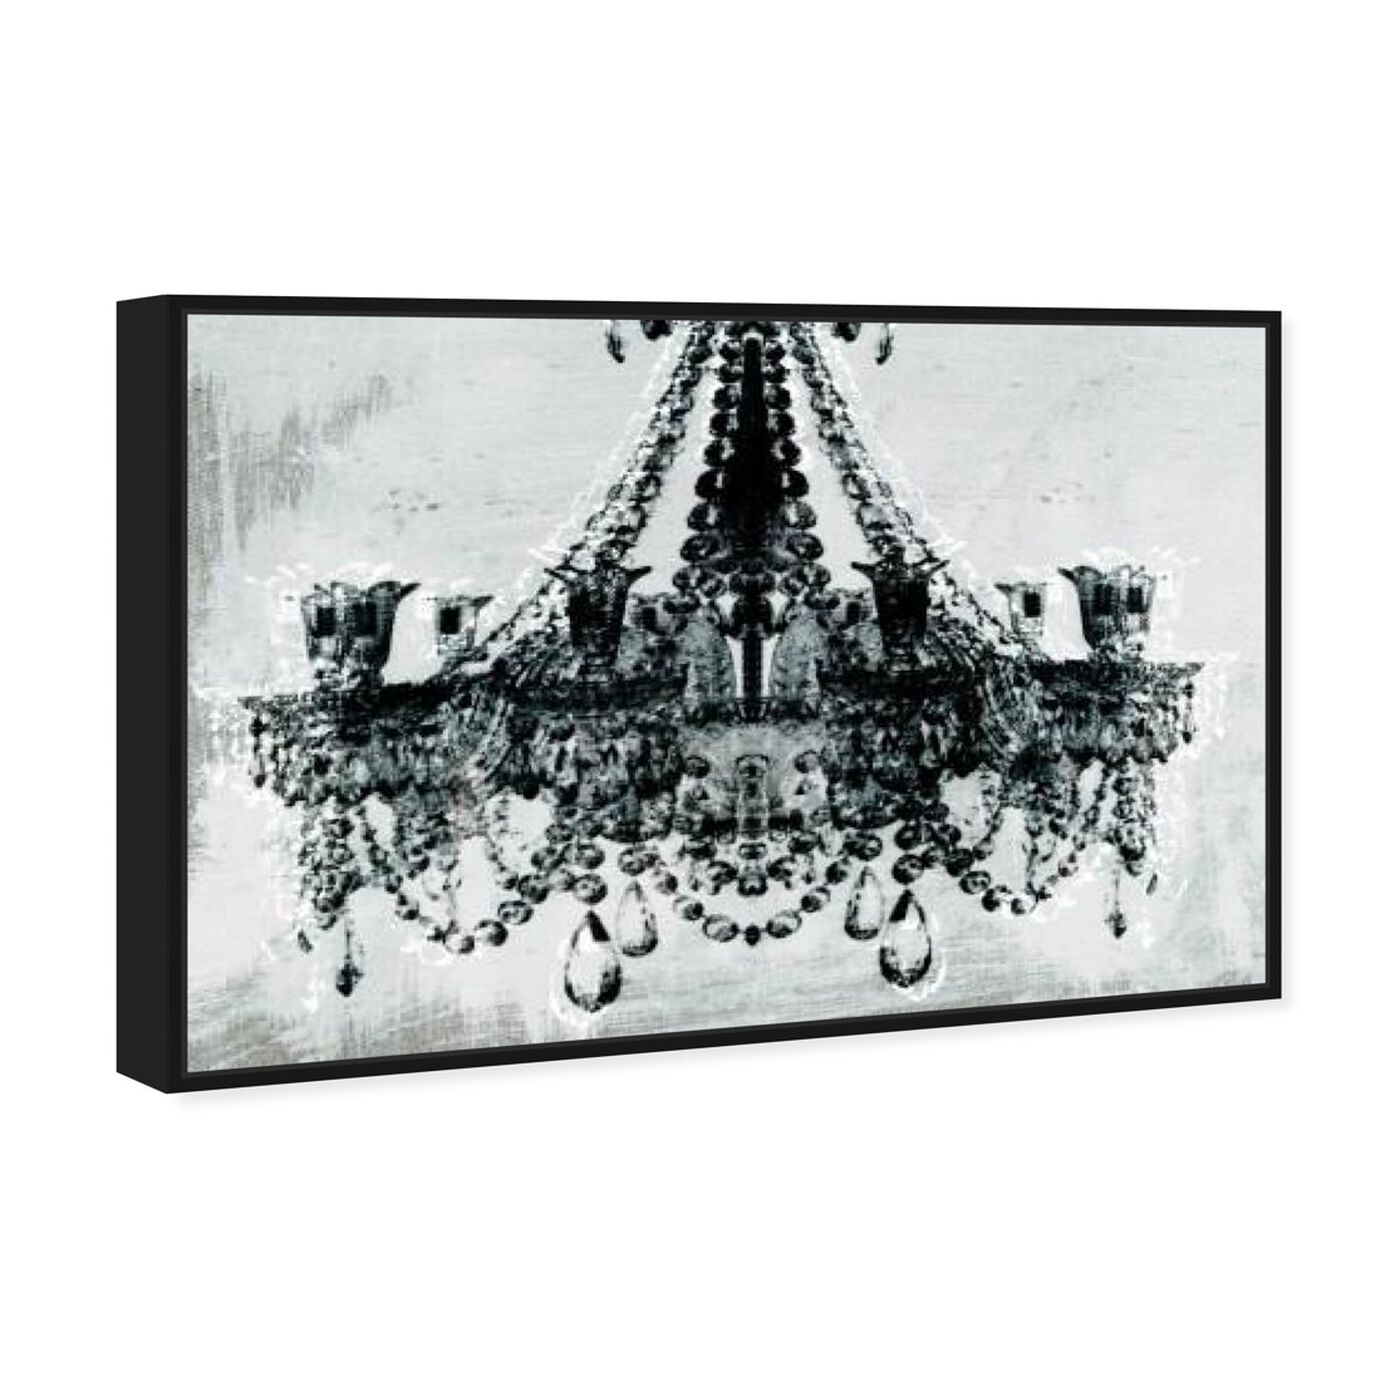 Angled view of Dramatic Entrance featuring fashion and glam and chandeliers art.